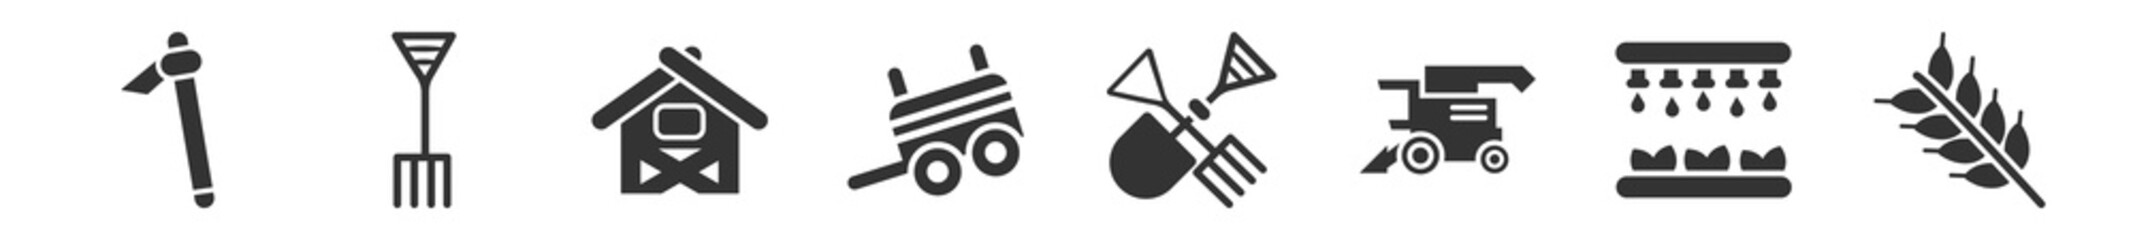 Obraz filled set of agriculture farming icons. glyph vector icons such as hoe, pitchfork, shed, farm trailer, farm tools, cereals. vector illustration. - fototapety do salonu